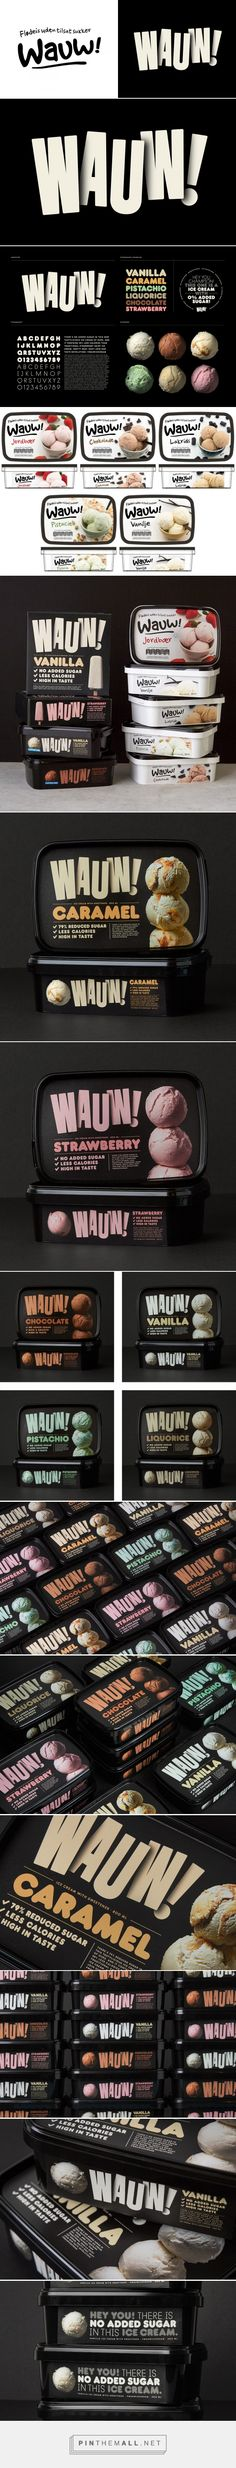 Brand New: New Logo and Packaging for Wauw by Snask - created via https://pinthemall.net